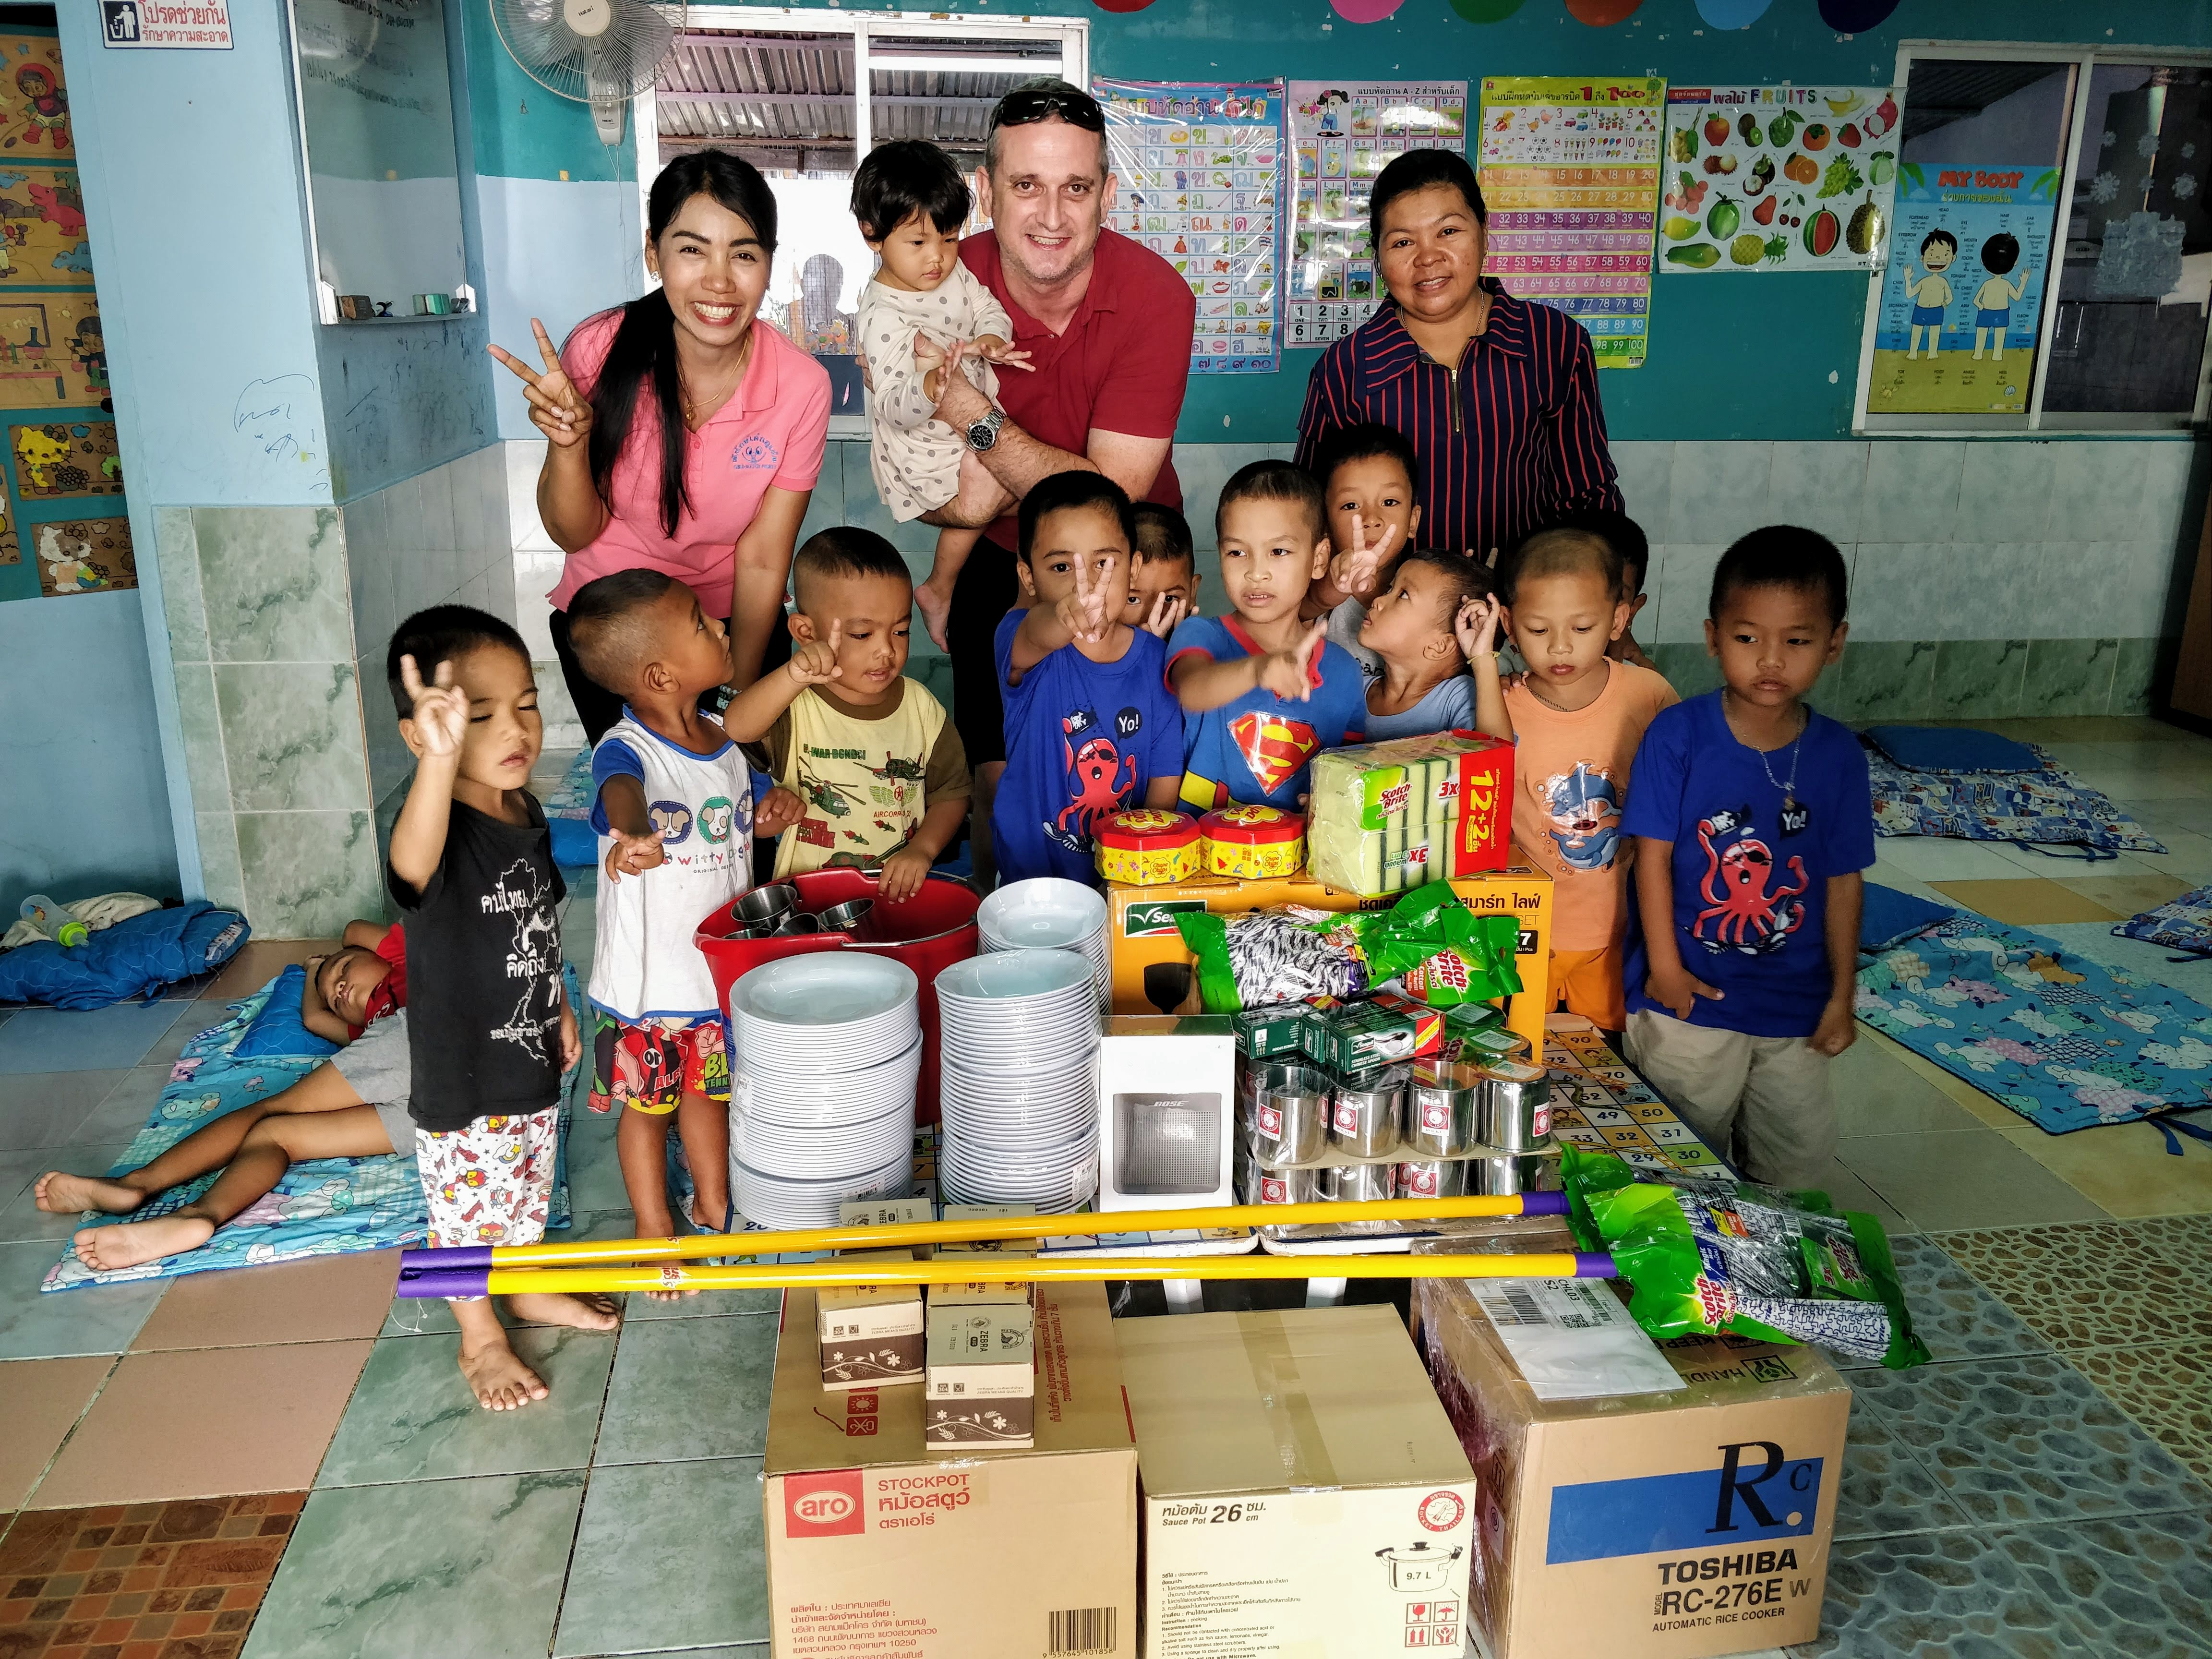 RPL donates to Phuket Child Watch Bang Lung Pitak Daycare Center